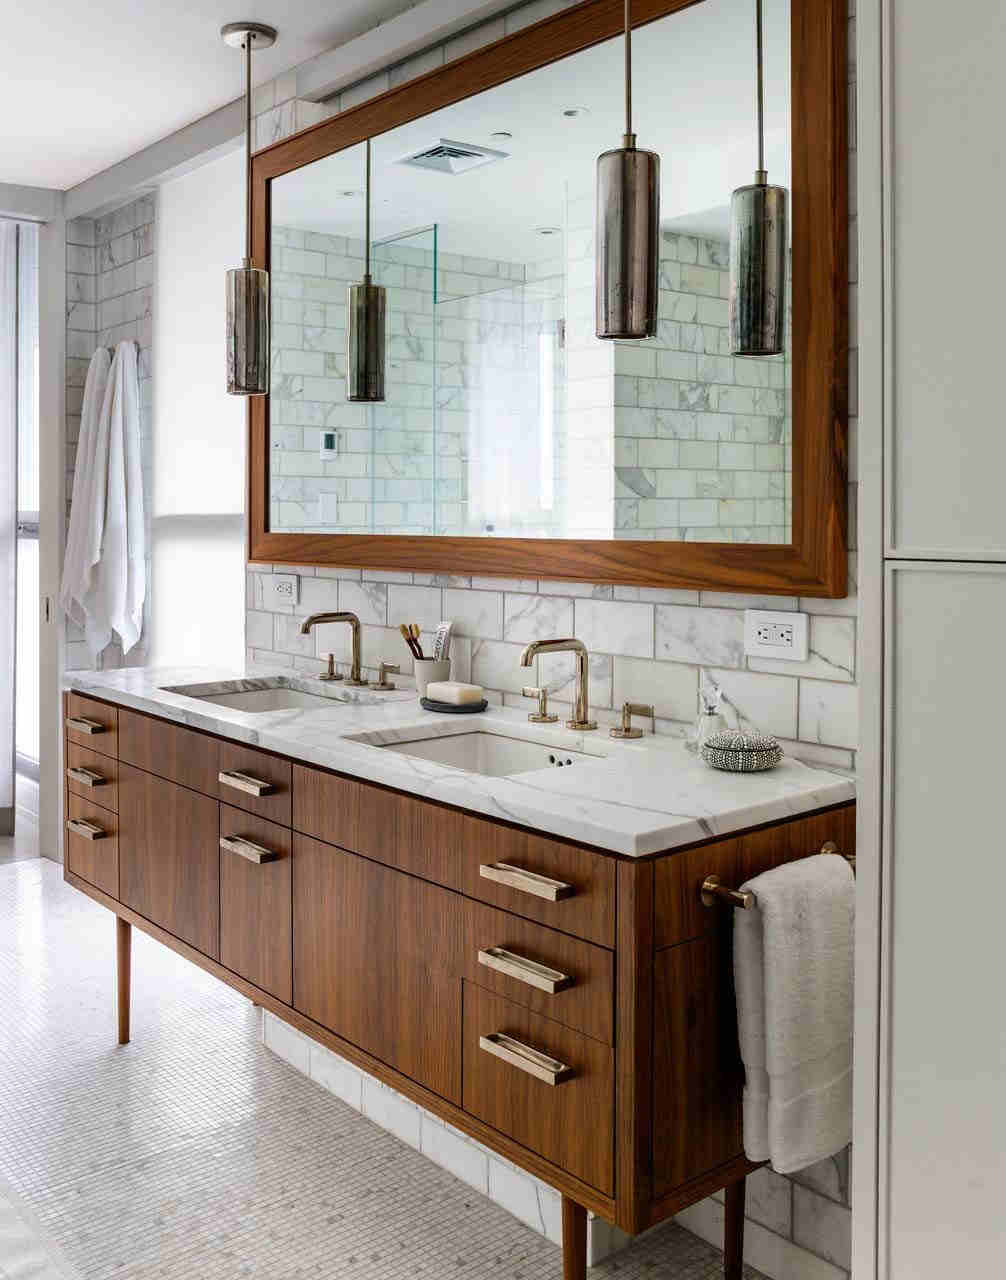 Mid Century Modern Bathroom - Picture Of Mid Century Modern Bathroom Design 1